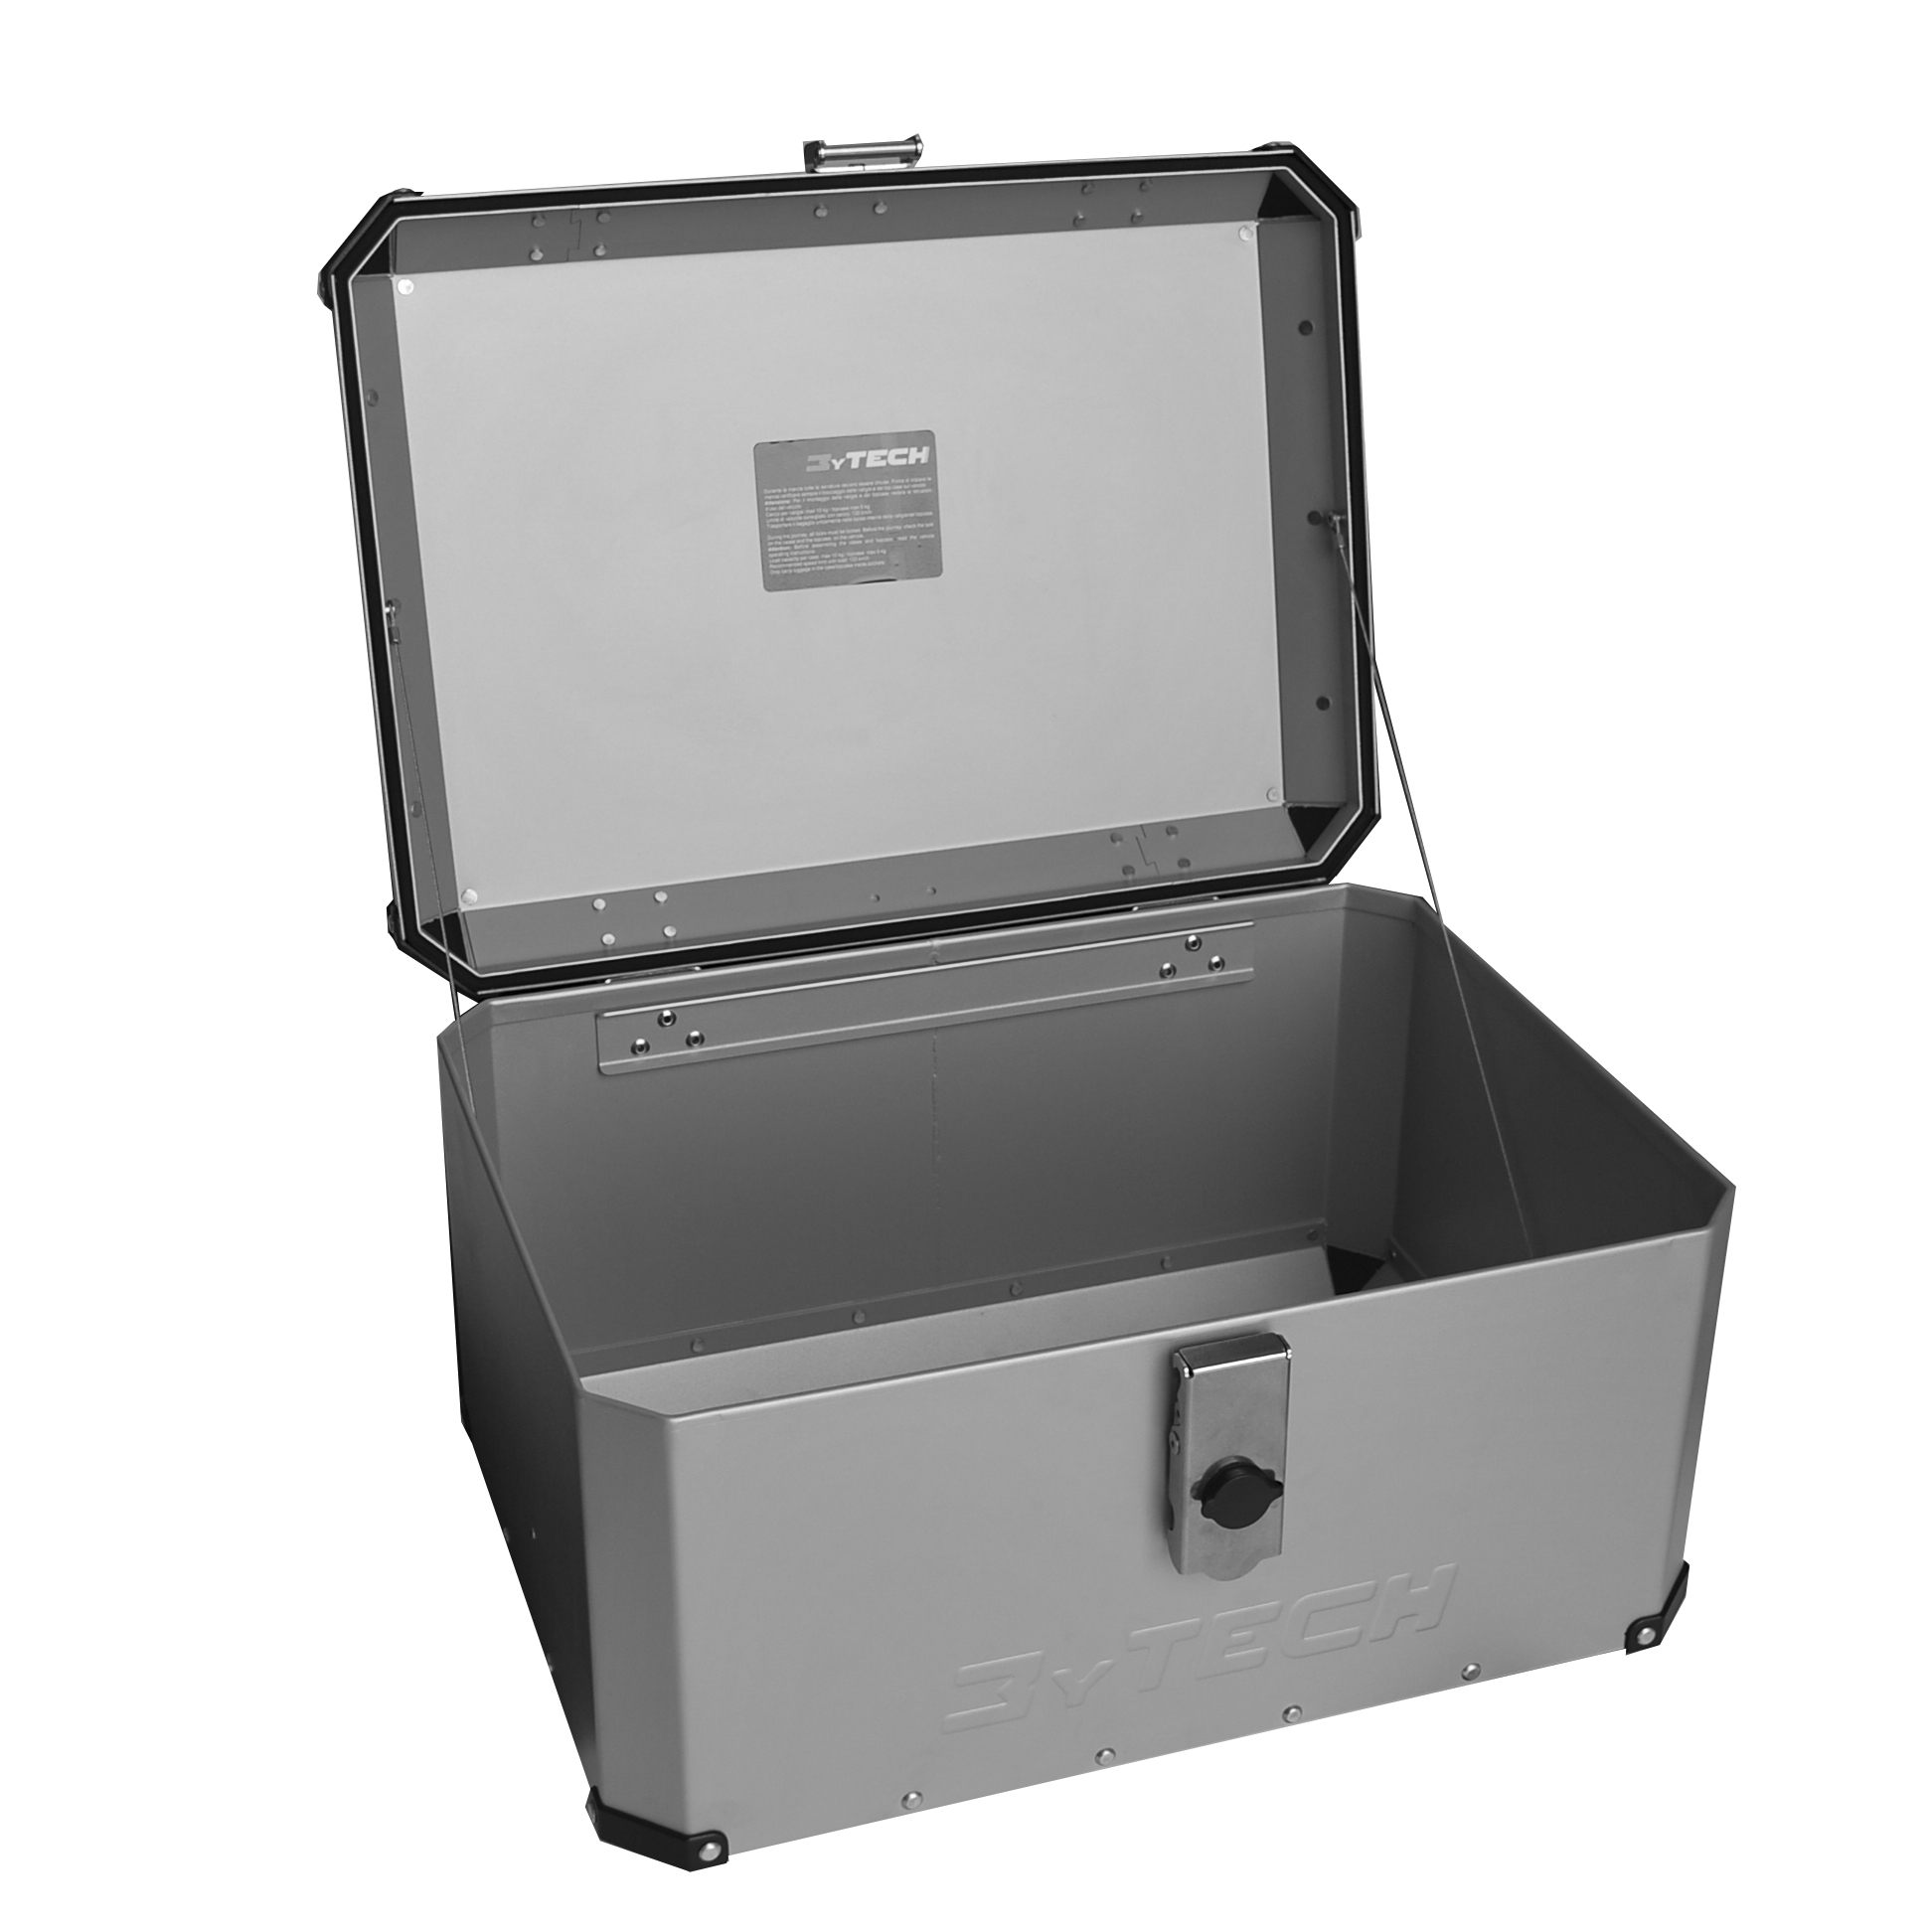 Mytech TOP CASE 55 LITER WITH FRONT OPENING - Silver